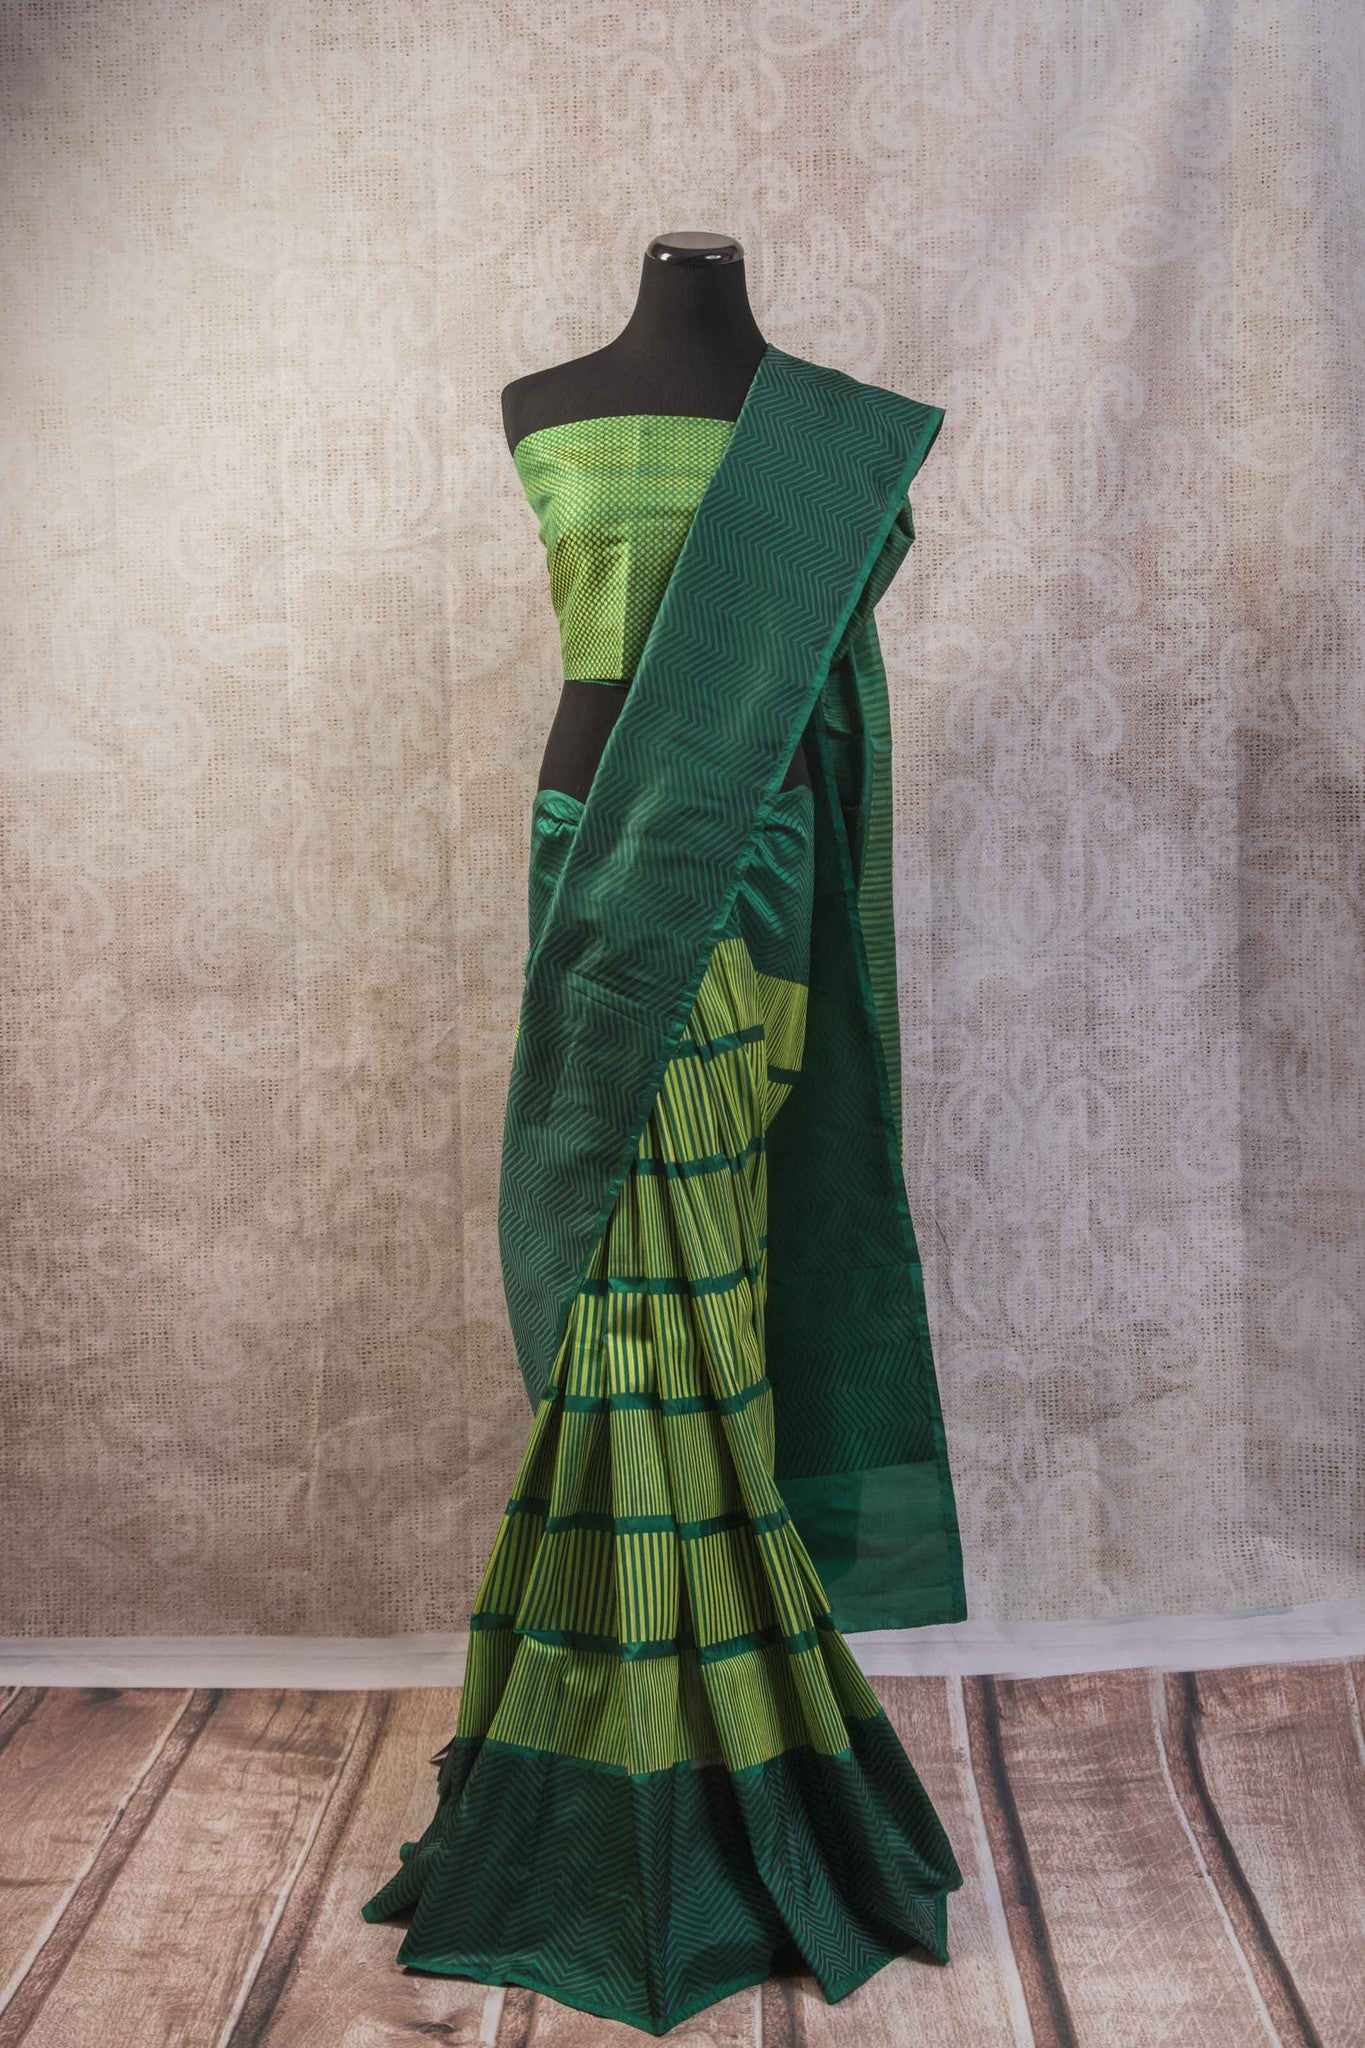 90b256 Multi green Banarasi silk saree with zig zag stripes & satin black pallu. The simple sari is available at our Indian clothing store in USA, Pure Elegance. This one is perfect for parties, get-togethers and functions!